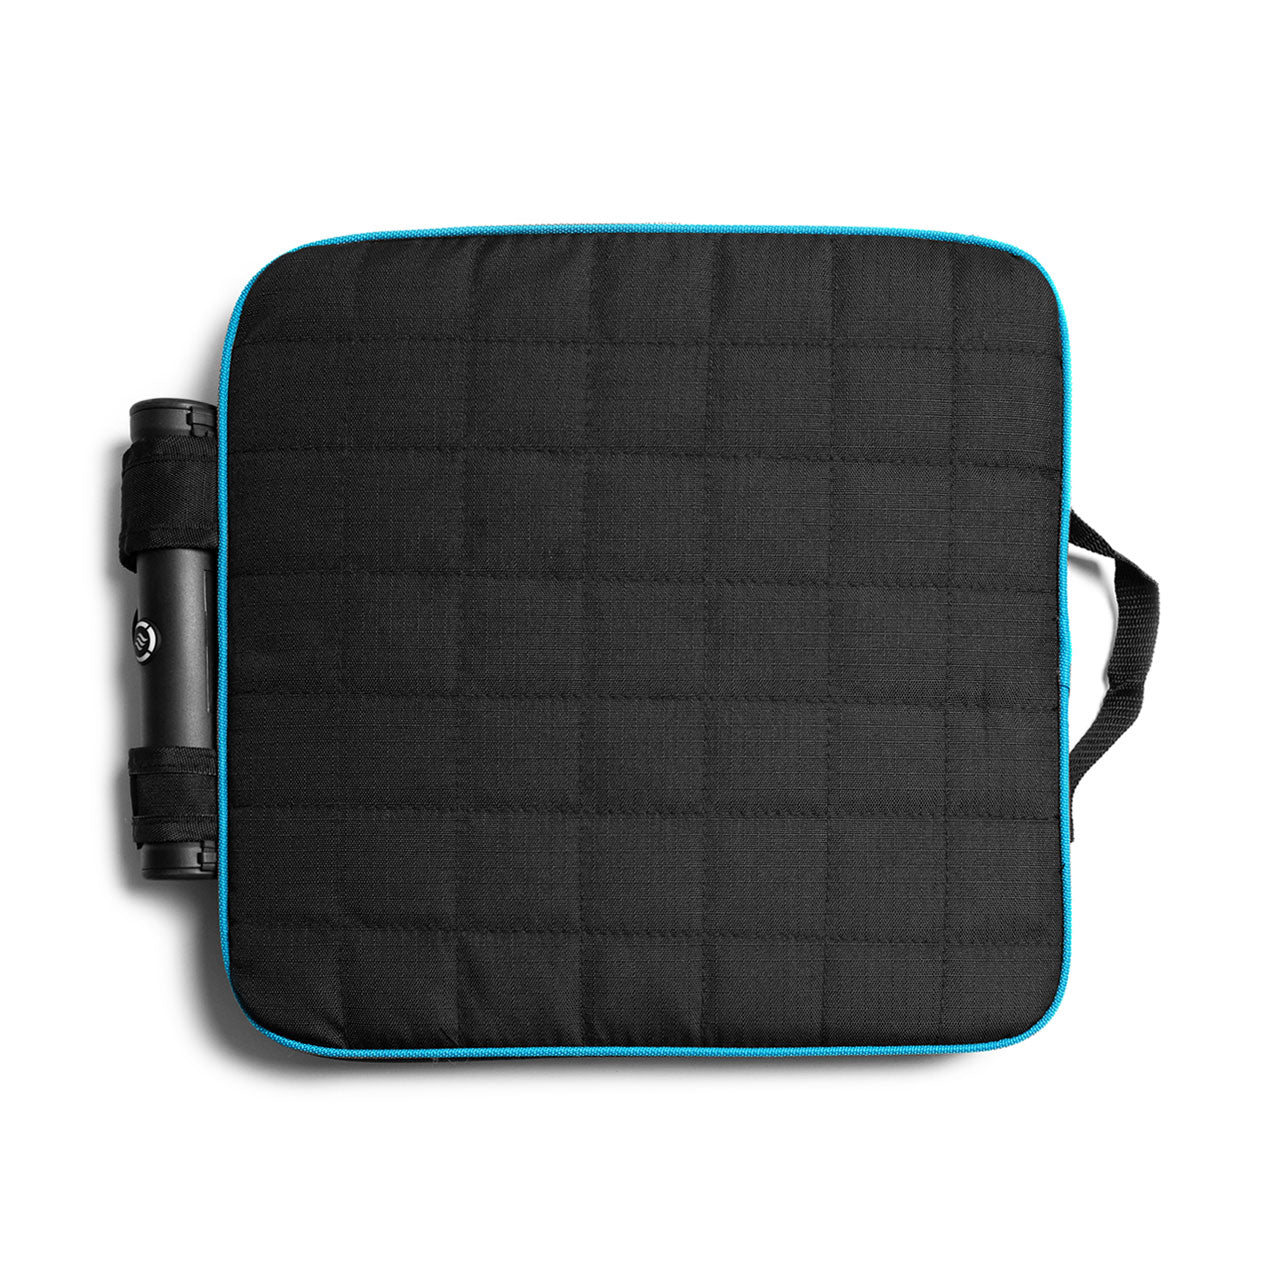 Coleman OneSource Heated Chair Pad